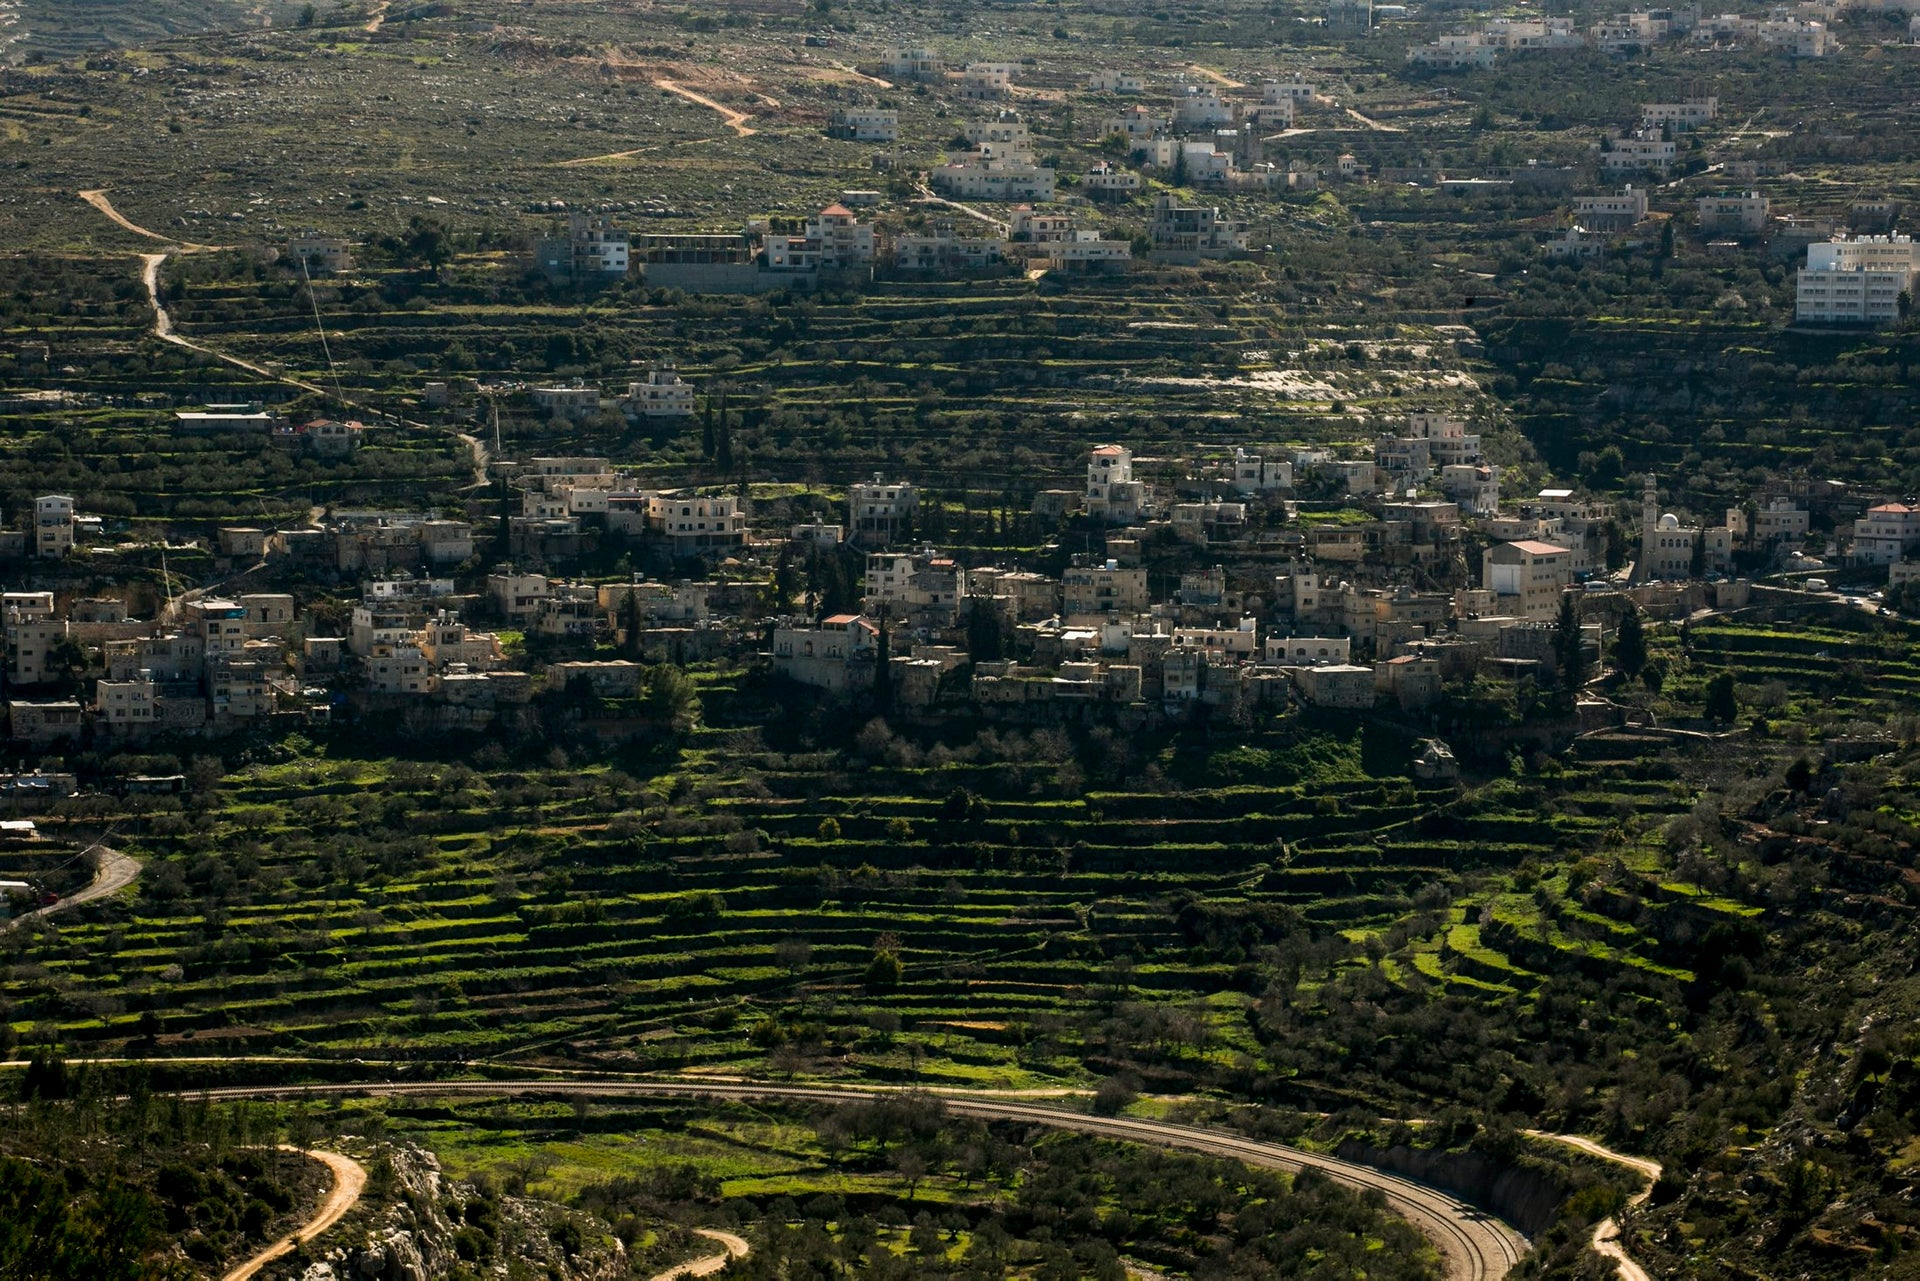 The terraces in the Palestinian village of Battir, south of Jerusalem. Built during the Ottoman era?